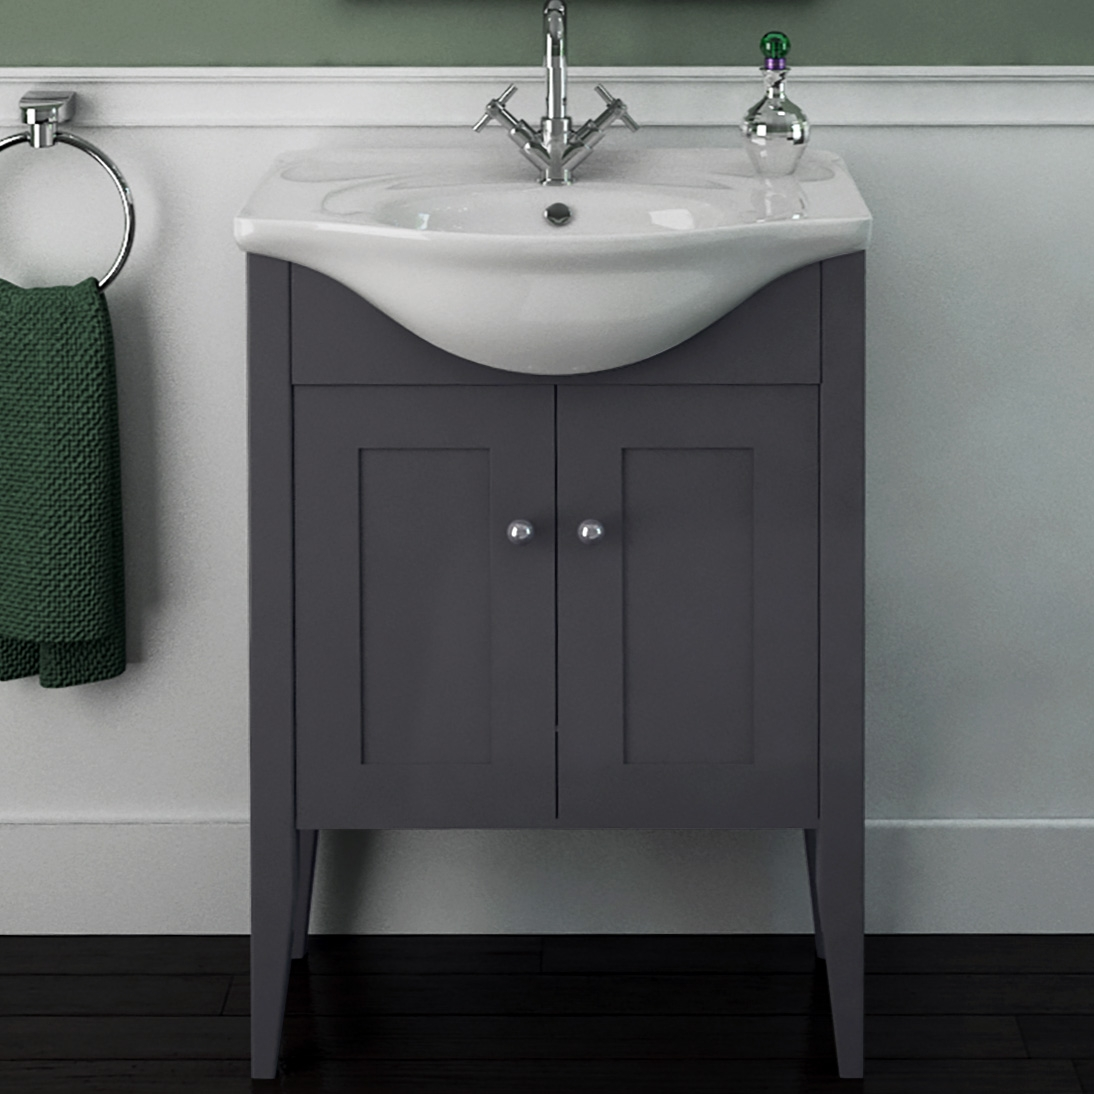 Bathroom Sinks With Vanity Units1094 X 1094